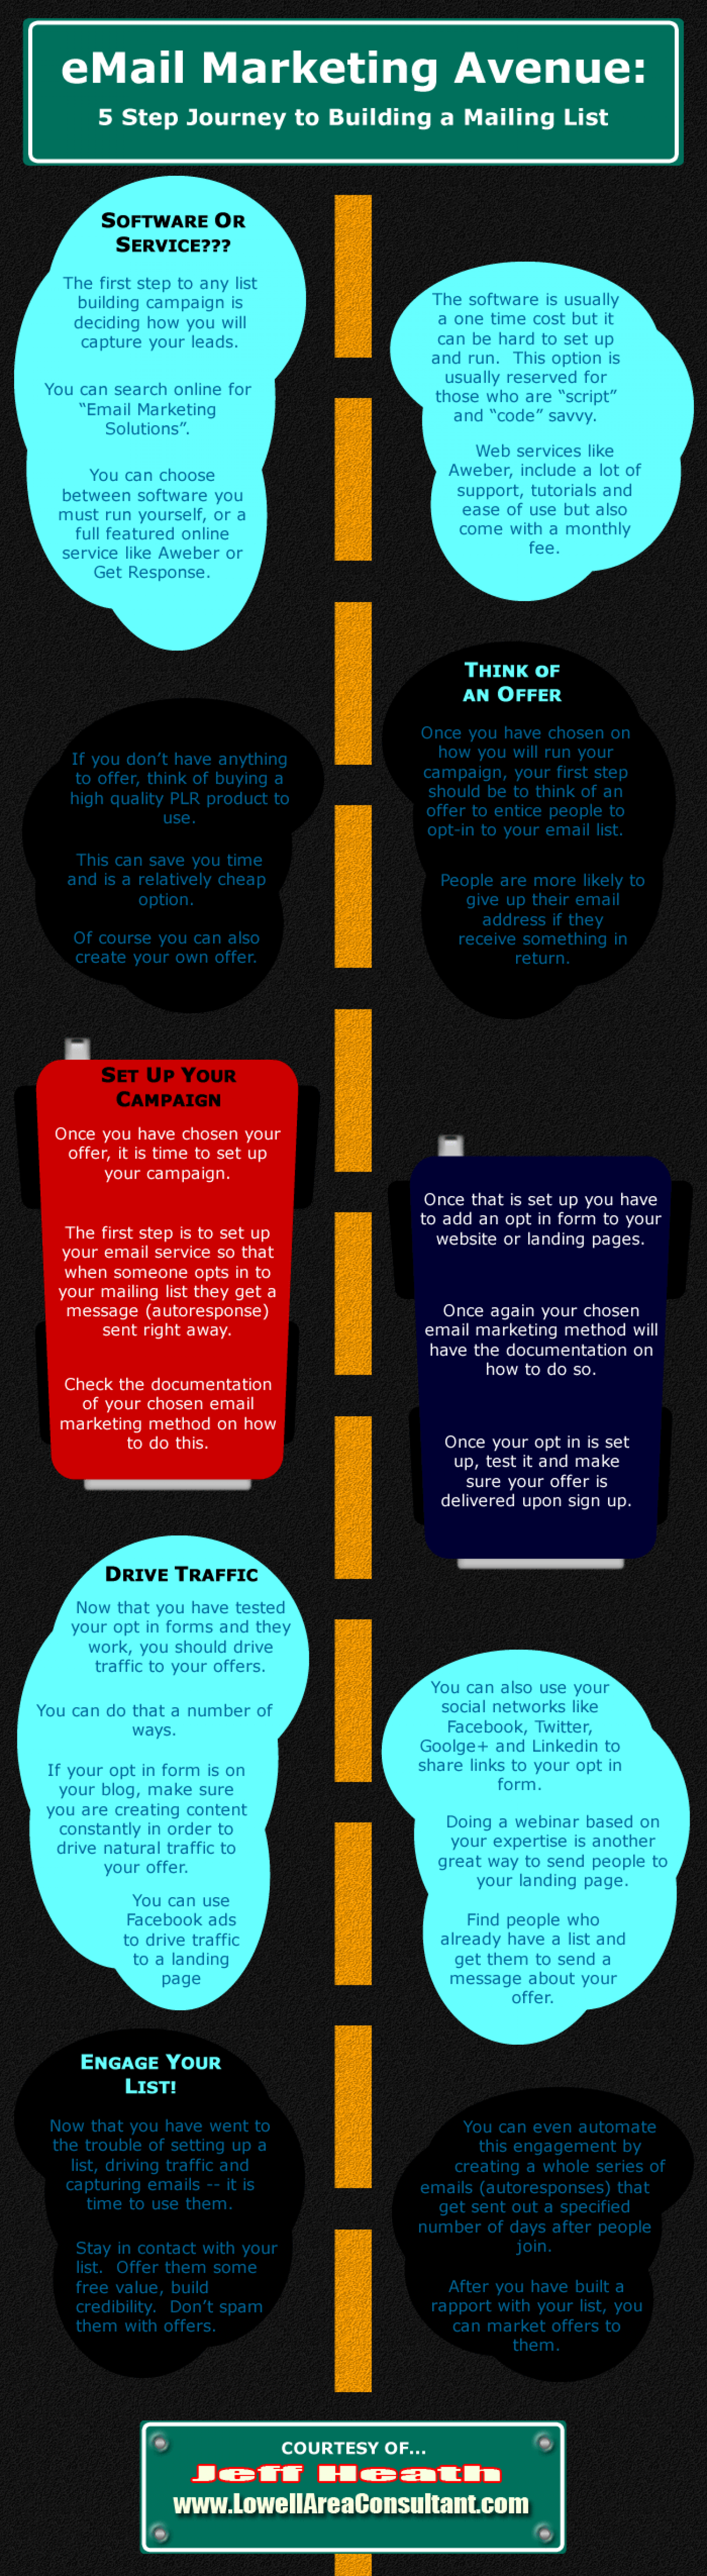 Email Marketing Avenue Infographic